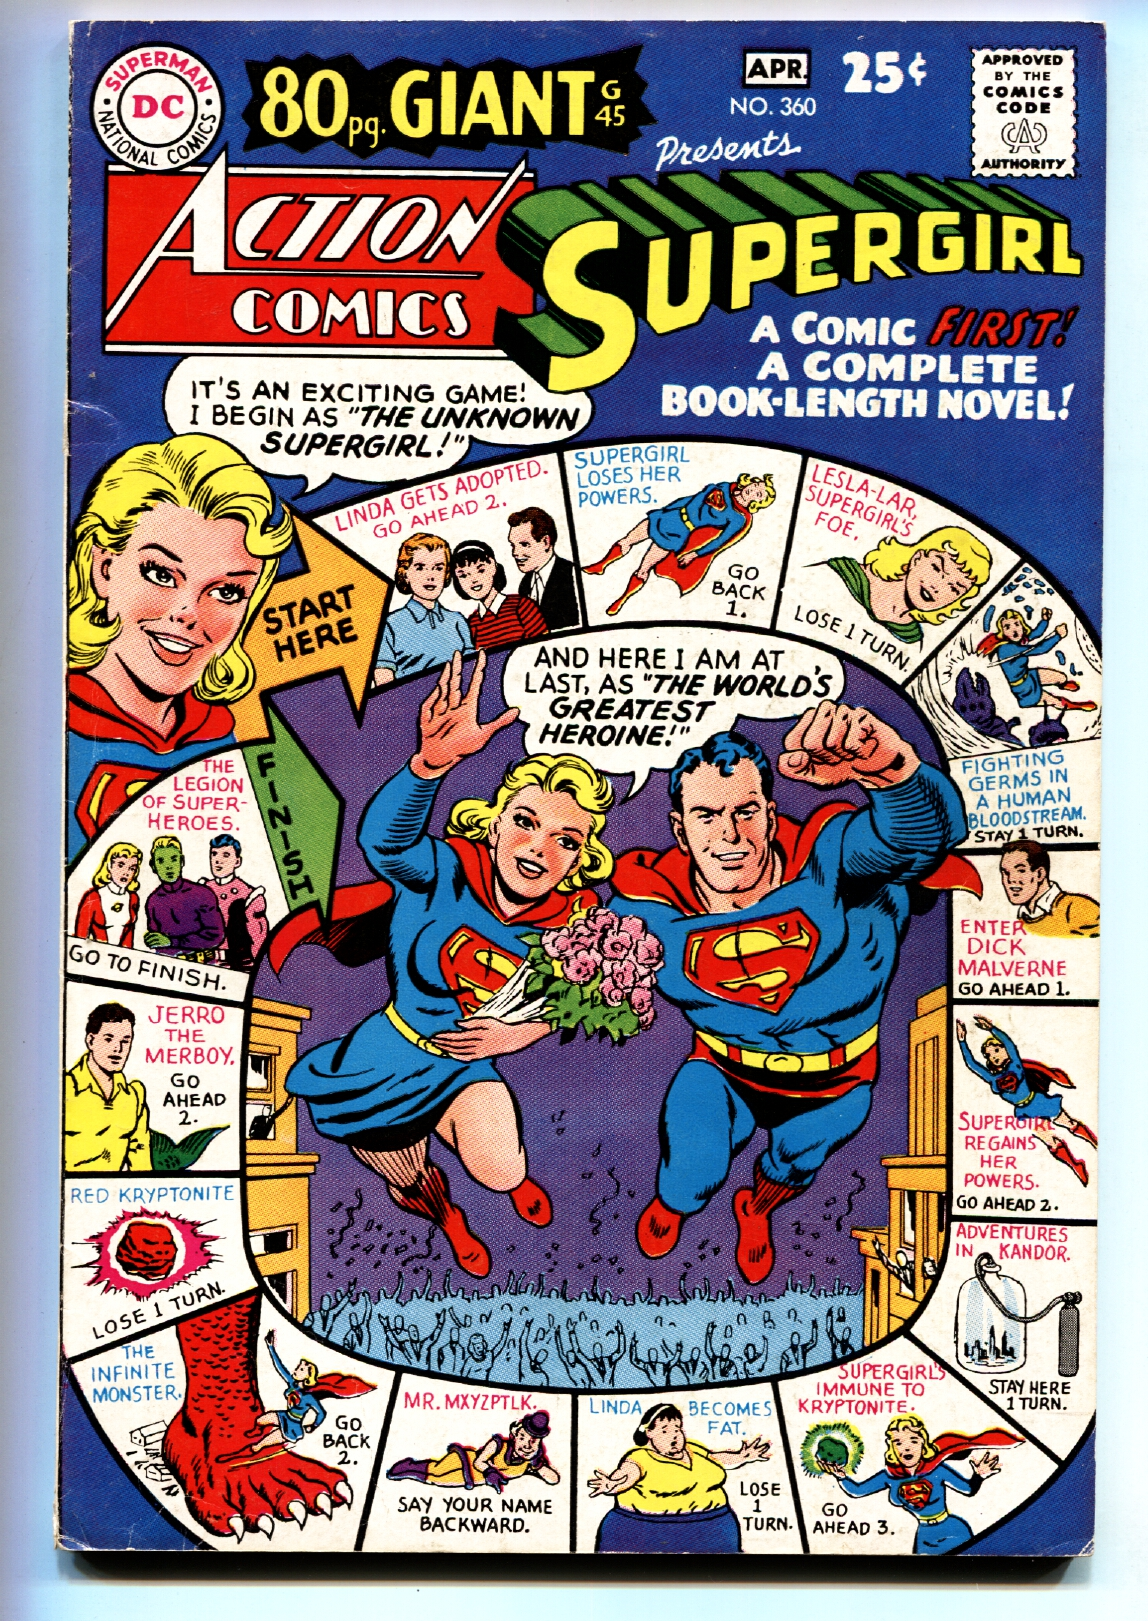 ACTION COMICS #360 comic book DC SUPERGIRL 1968 80 PG GIANT #45 FN Fine